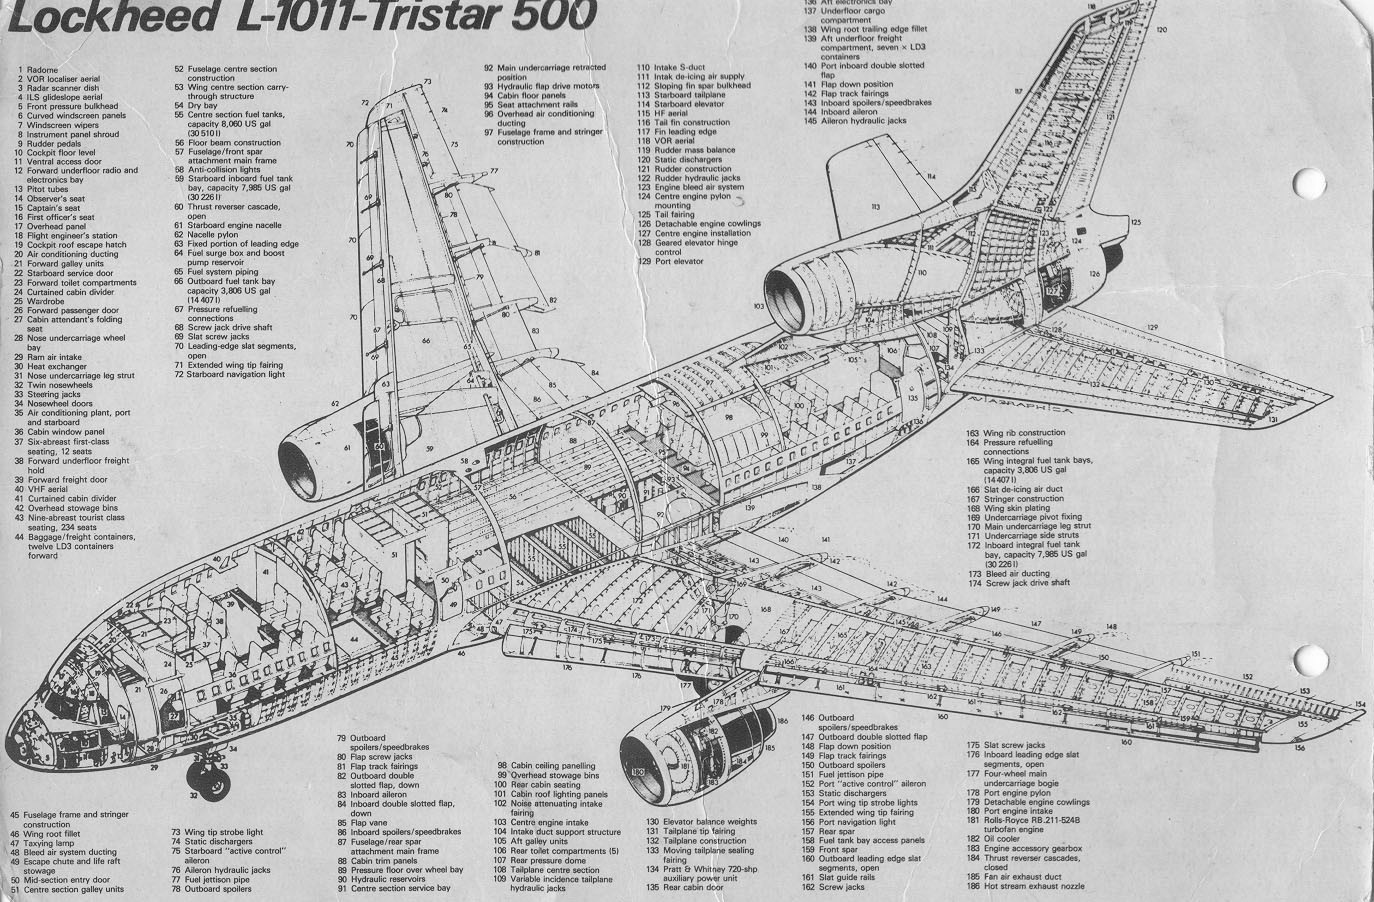 Image Cutaway Jpg Aircraft Wiki Fandom Powered By Wikia